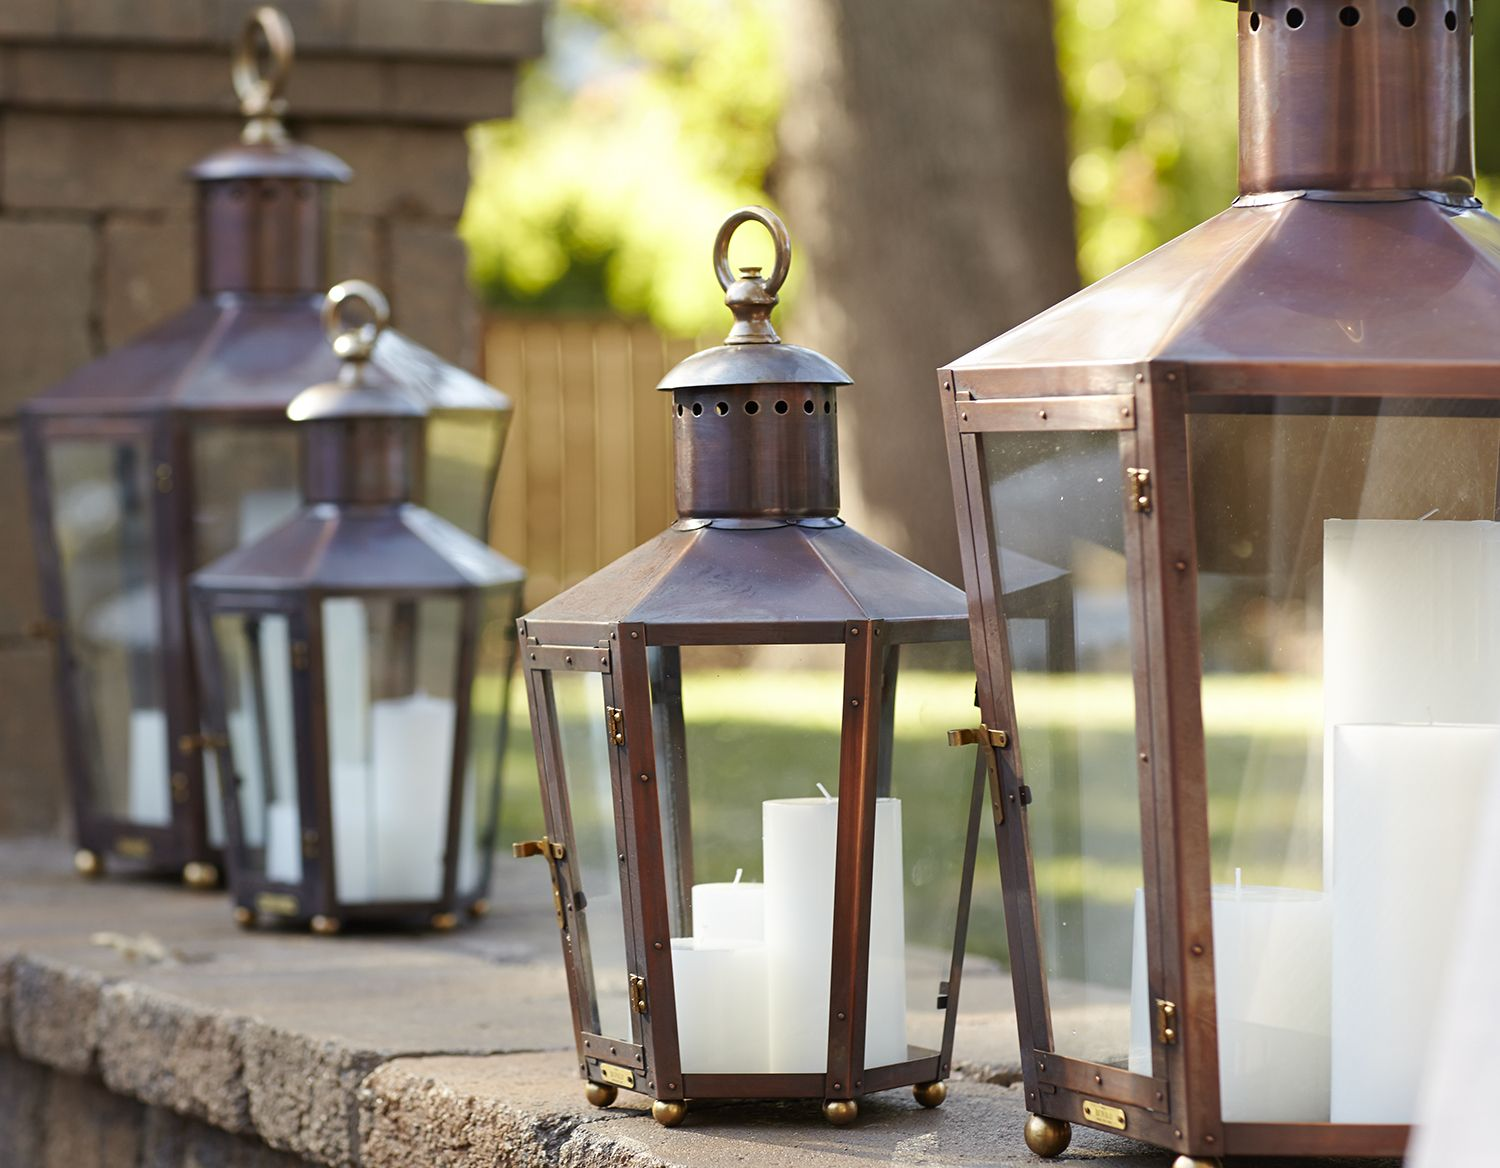 Pin By Traditional Home On Napa Valley Showhouse Garden Wall Lights Bevolo Lanterns